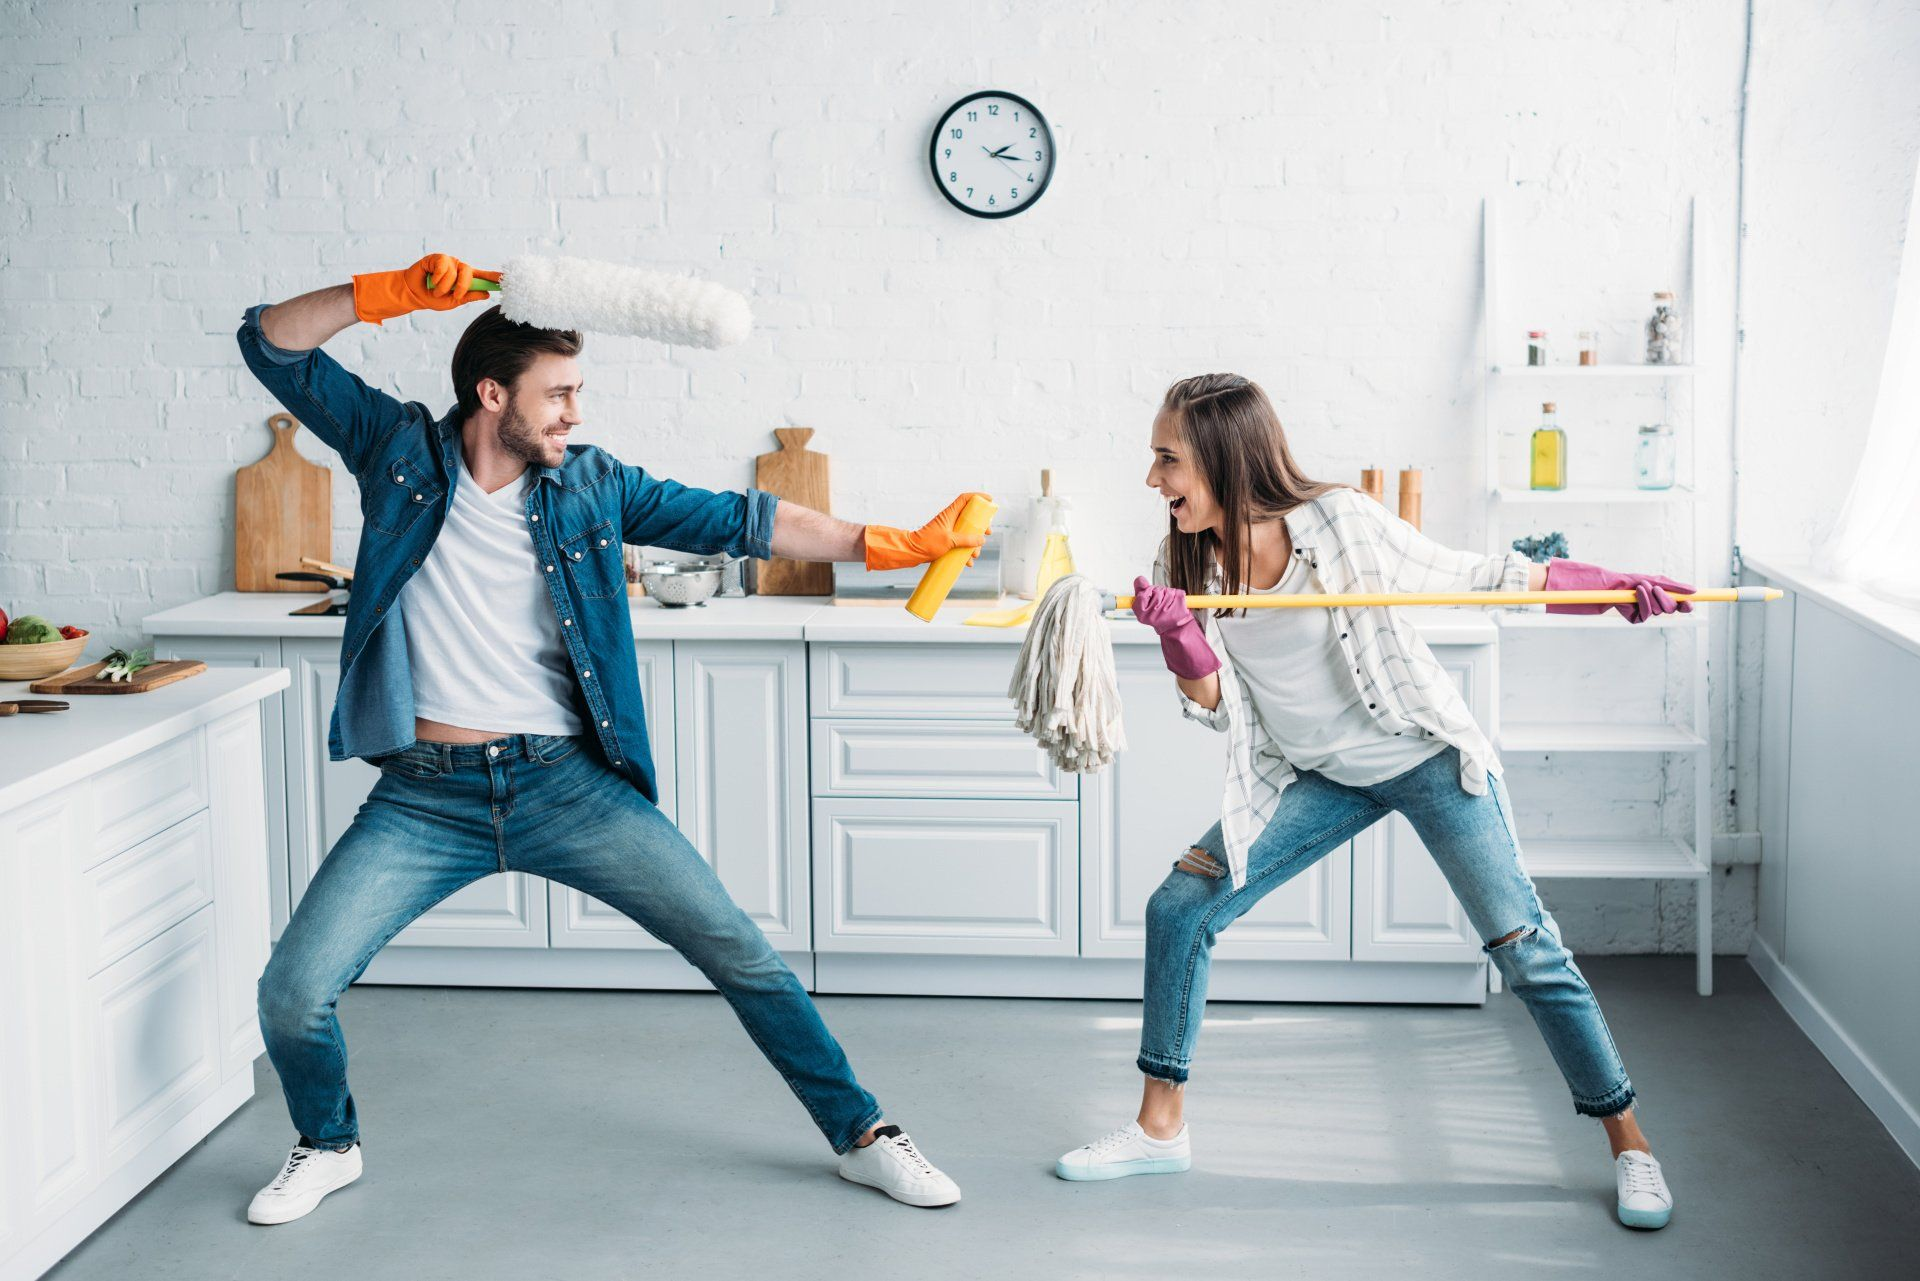 man and woman playfully fighting with cleaning products